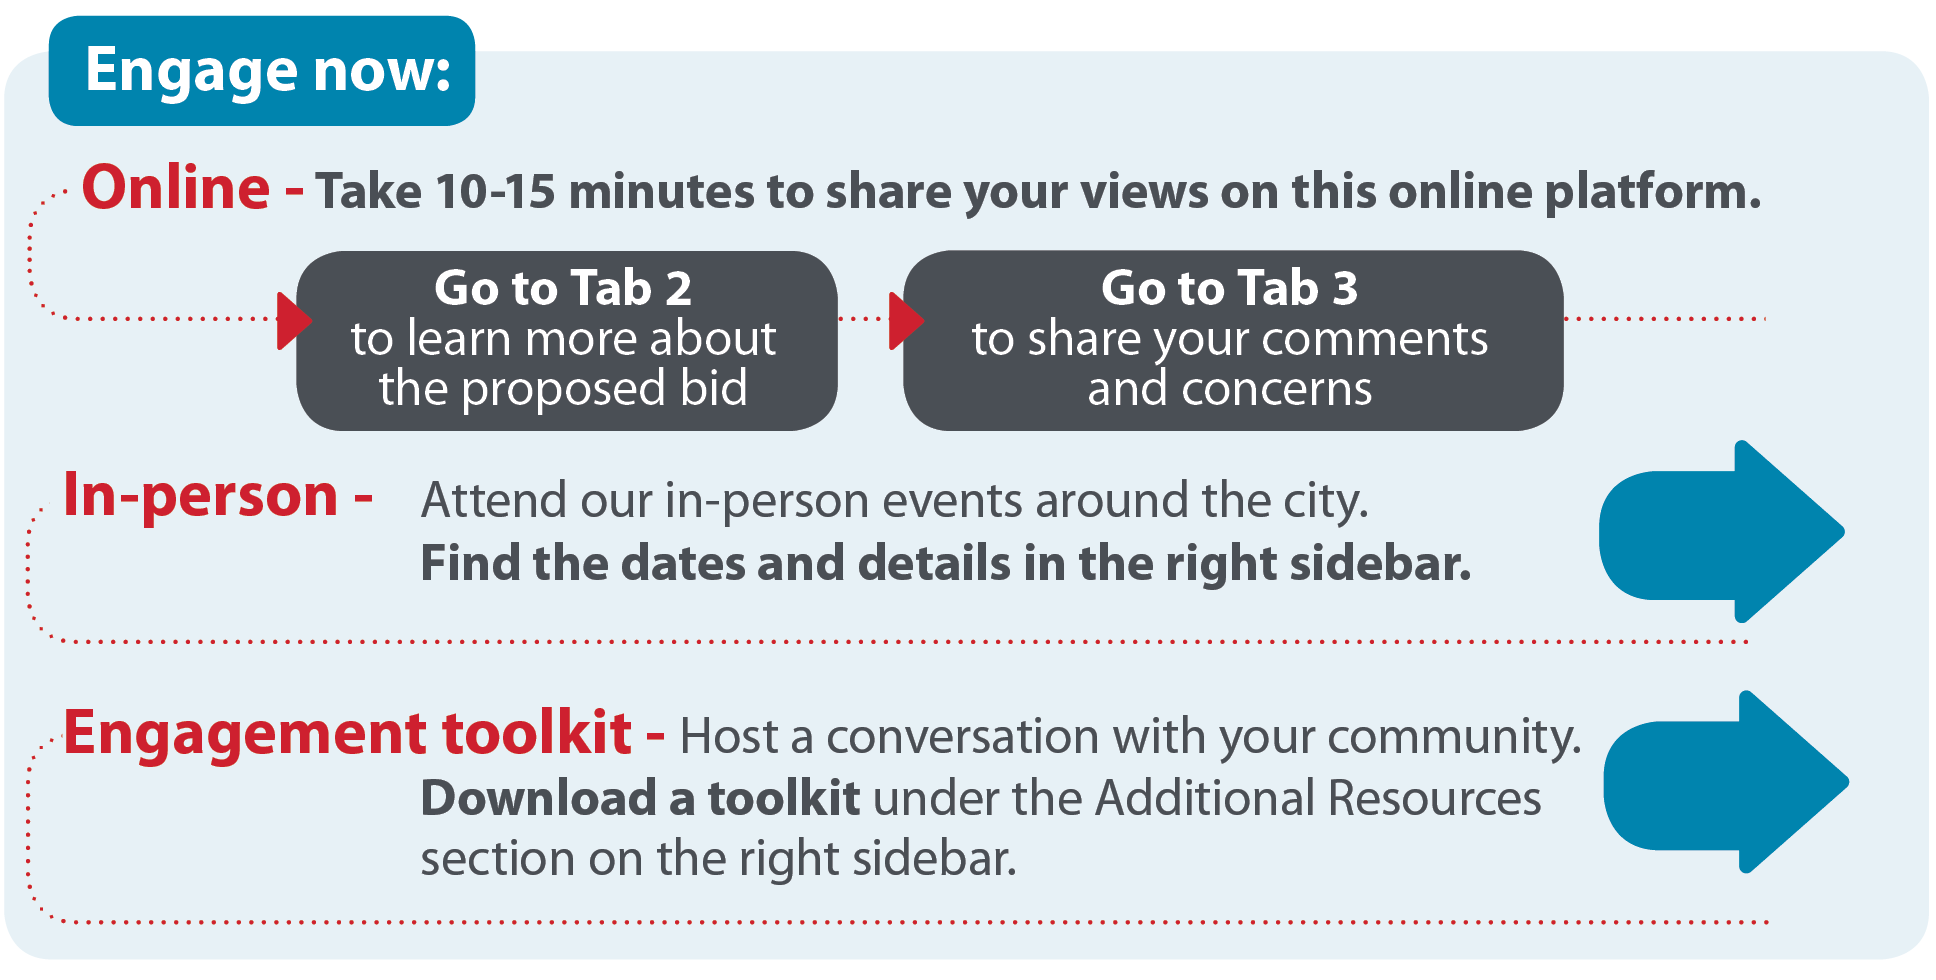 Online, engage on this platform to help The City understand your views. In-person, attend our in-person events around the city. Engagement toolkit, host a conversation with your community.